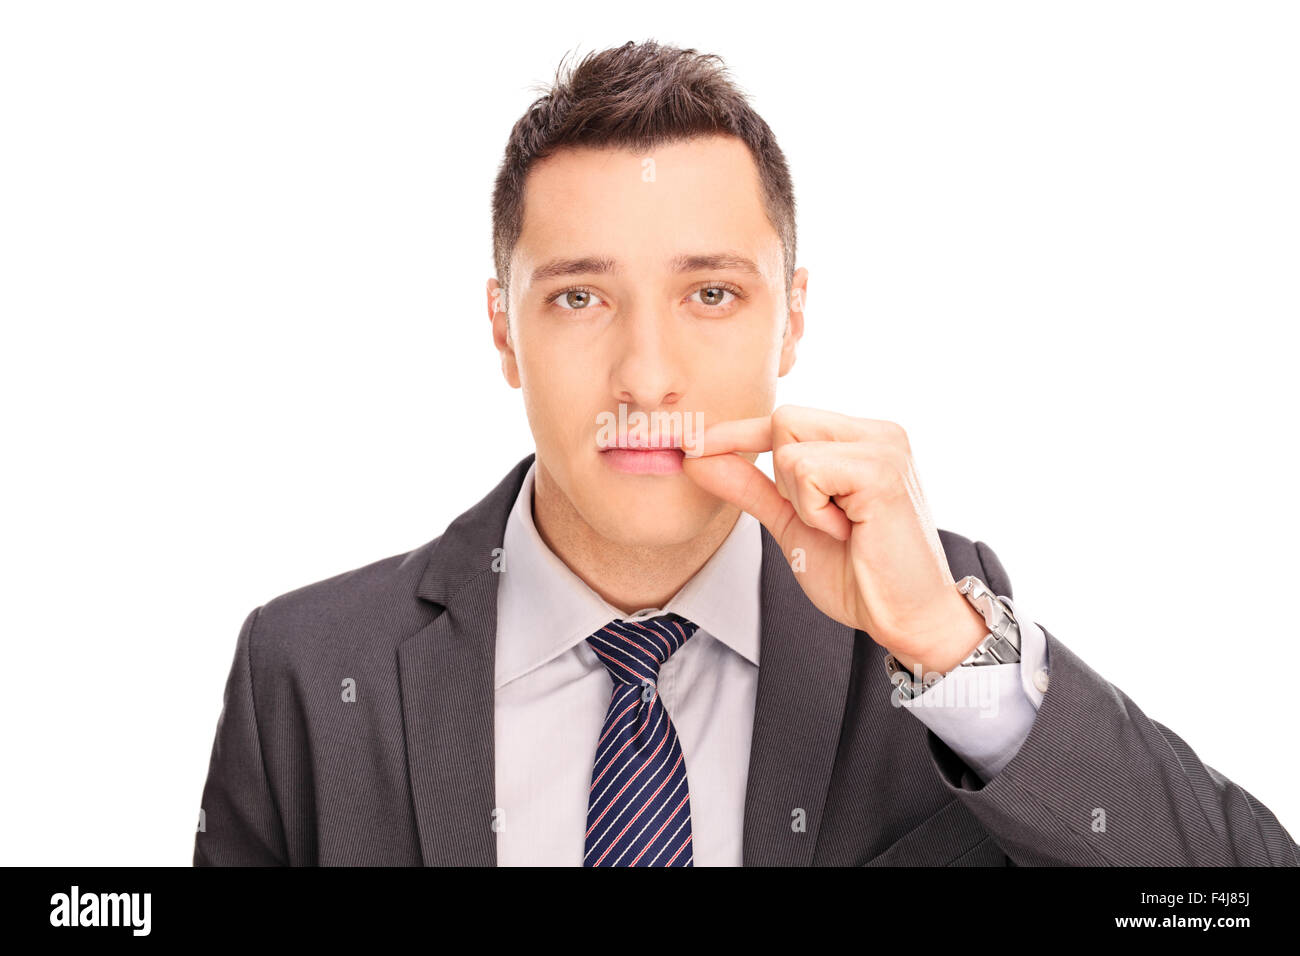 Close-up on a young businessman holding his hand on his lips symbolizing shut mouth isolated on white background - Stock Image